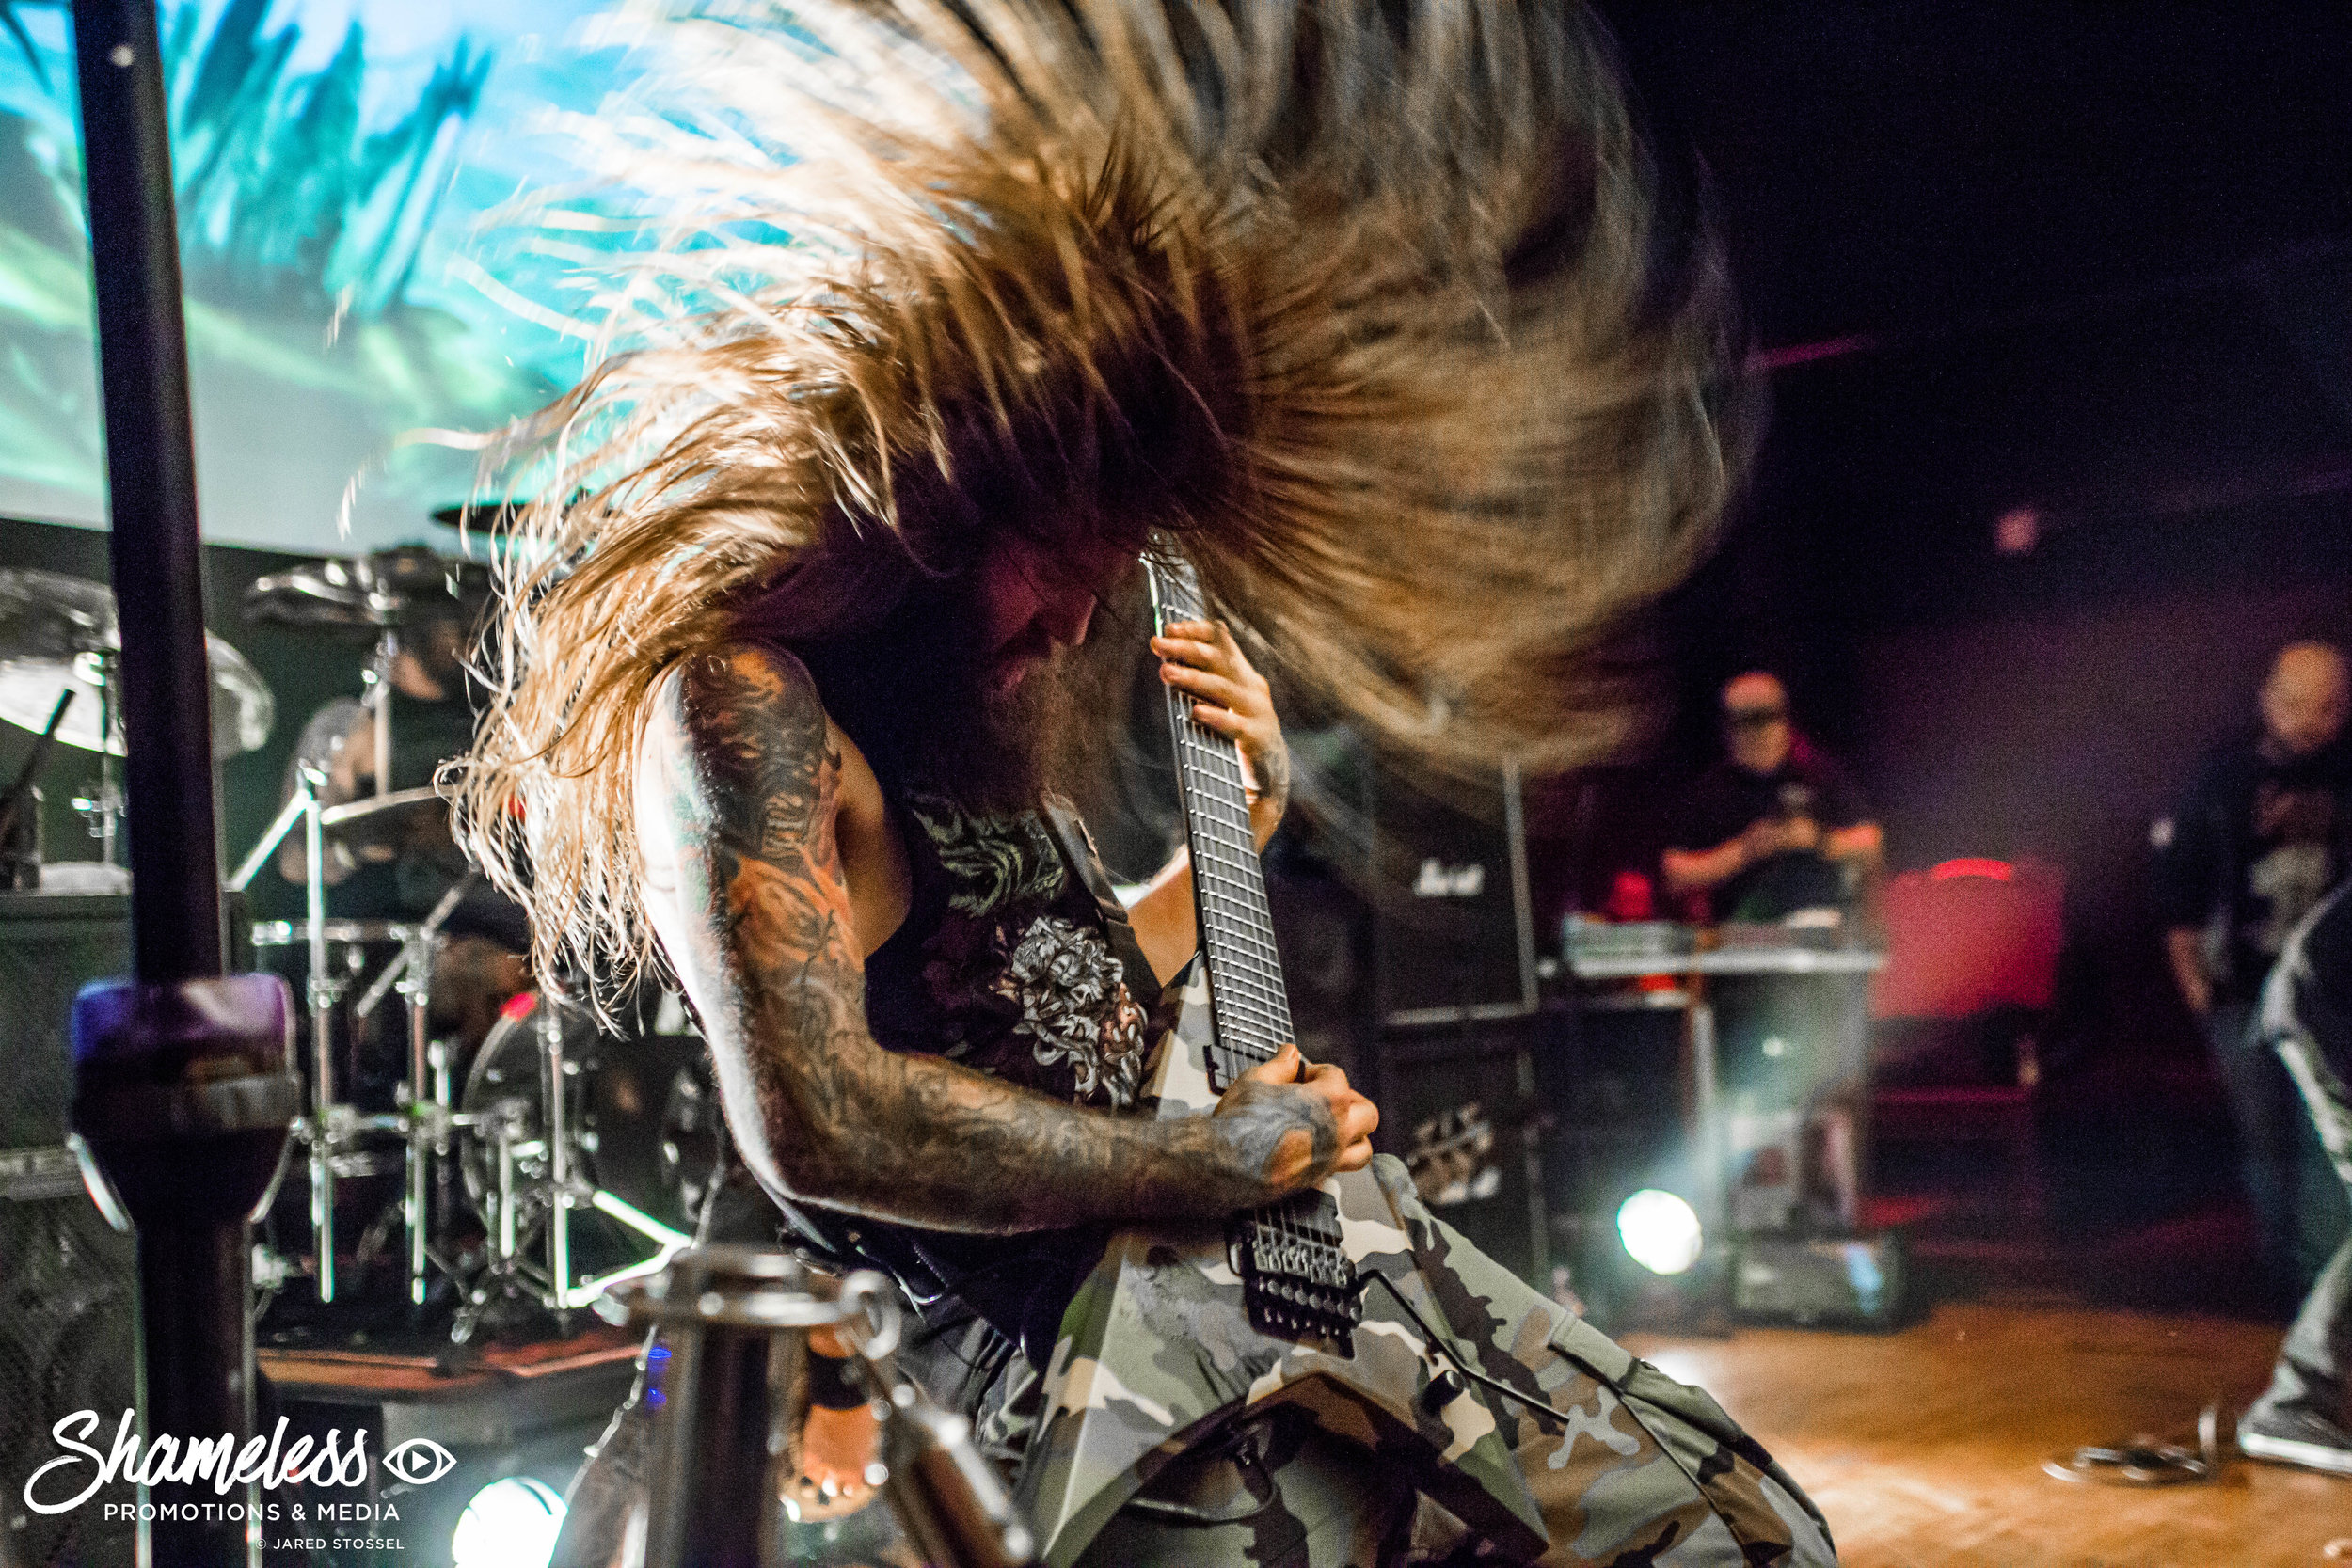 Suicide Silence 'The Cleansing' 10-Year Anniversary Tour @ Complex Oakland: November 2017